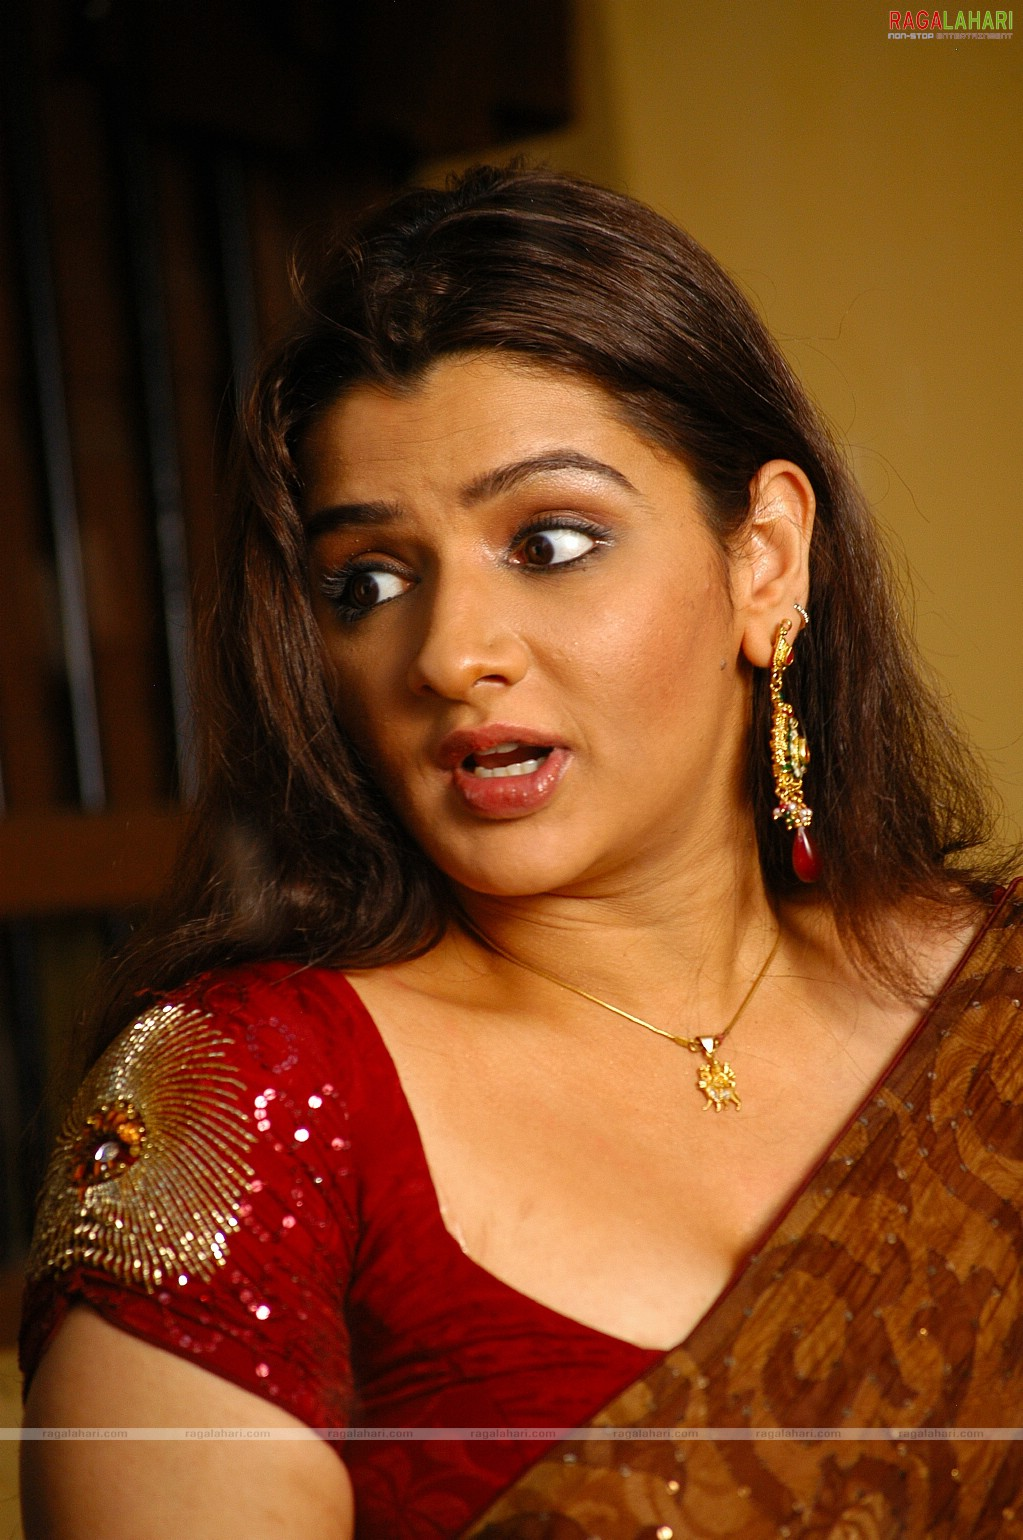 Forum on this topic: Teal Marchande, aarthi-agarwal/